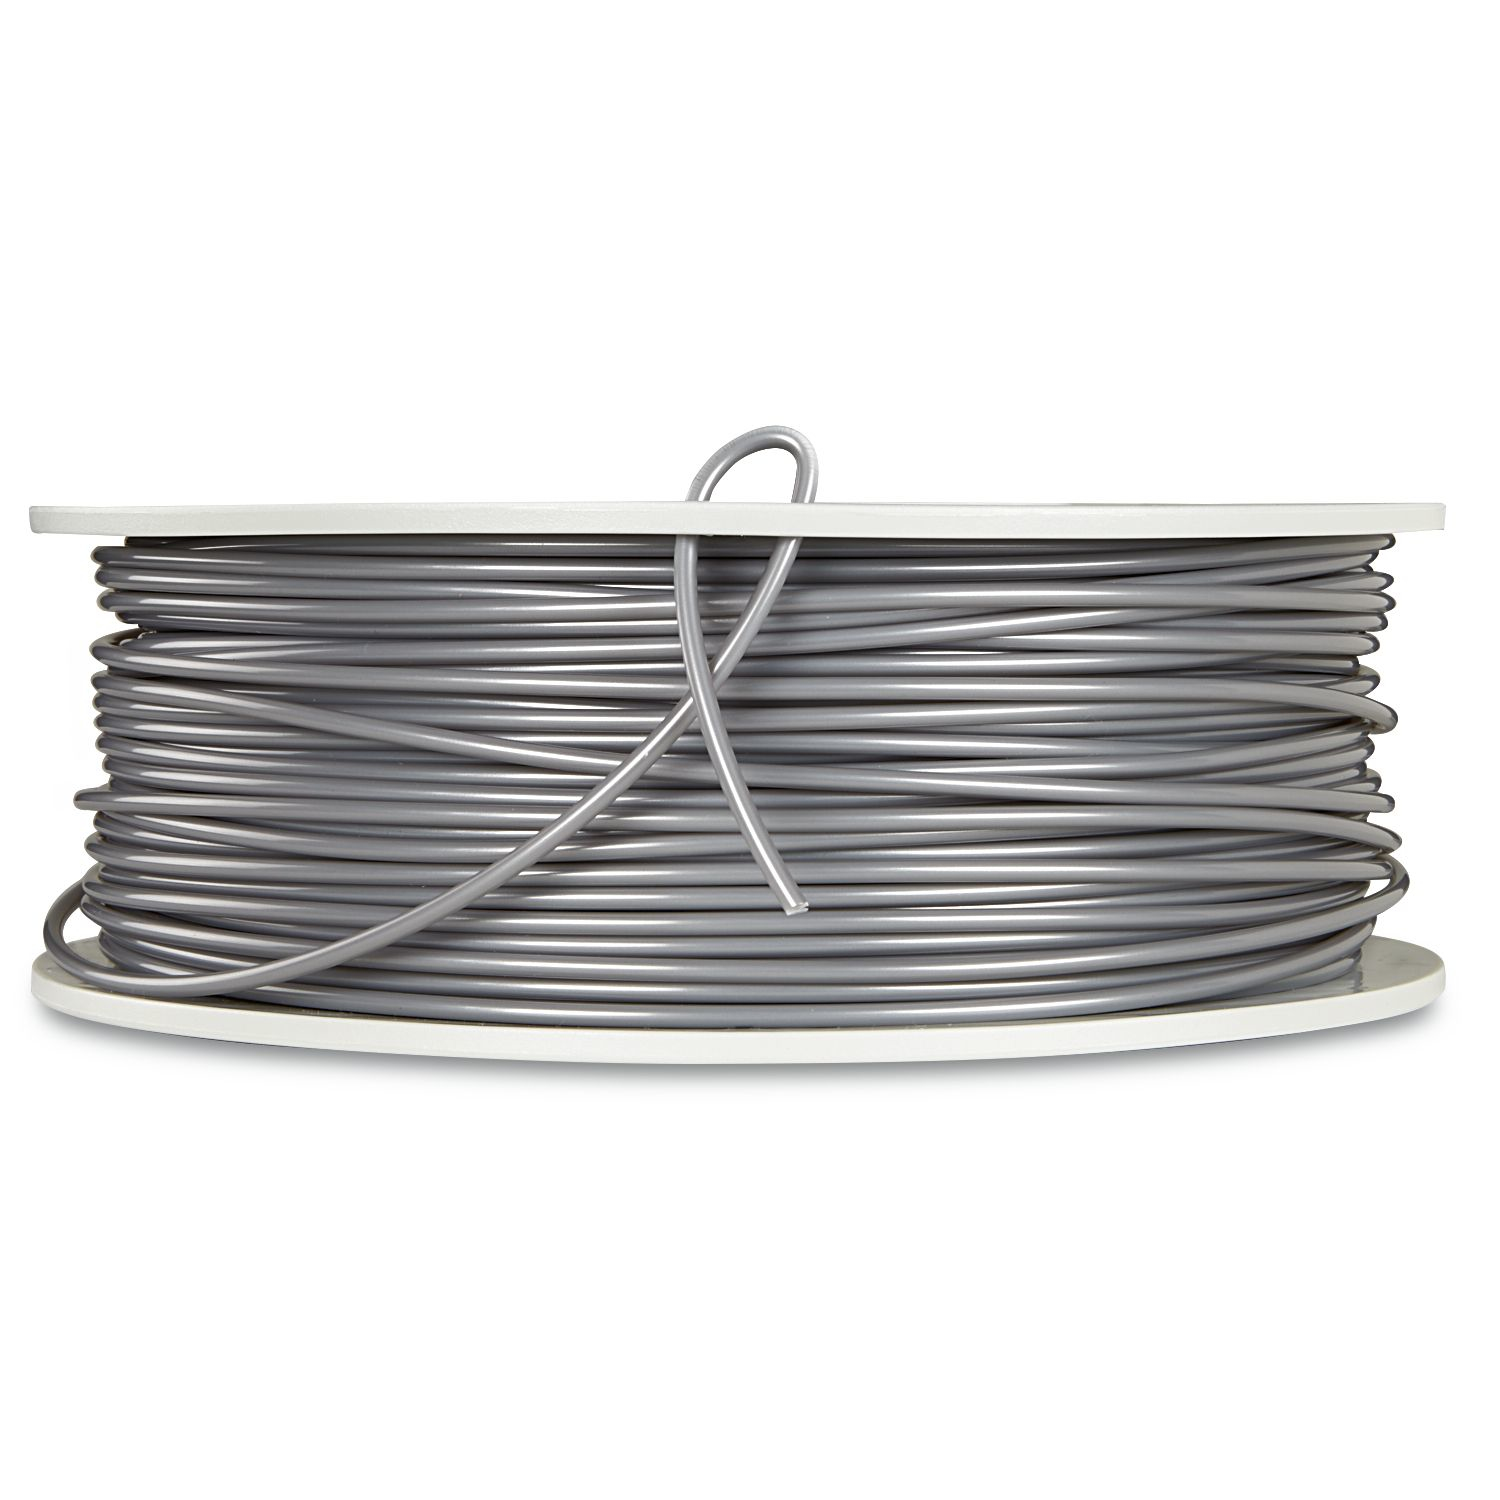 Pla 3d Filament 2.85mm Silver/metal